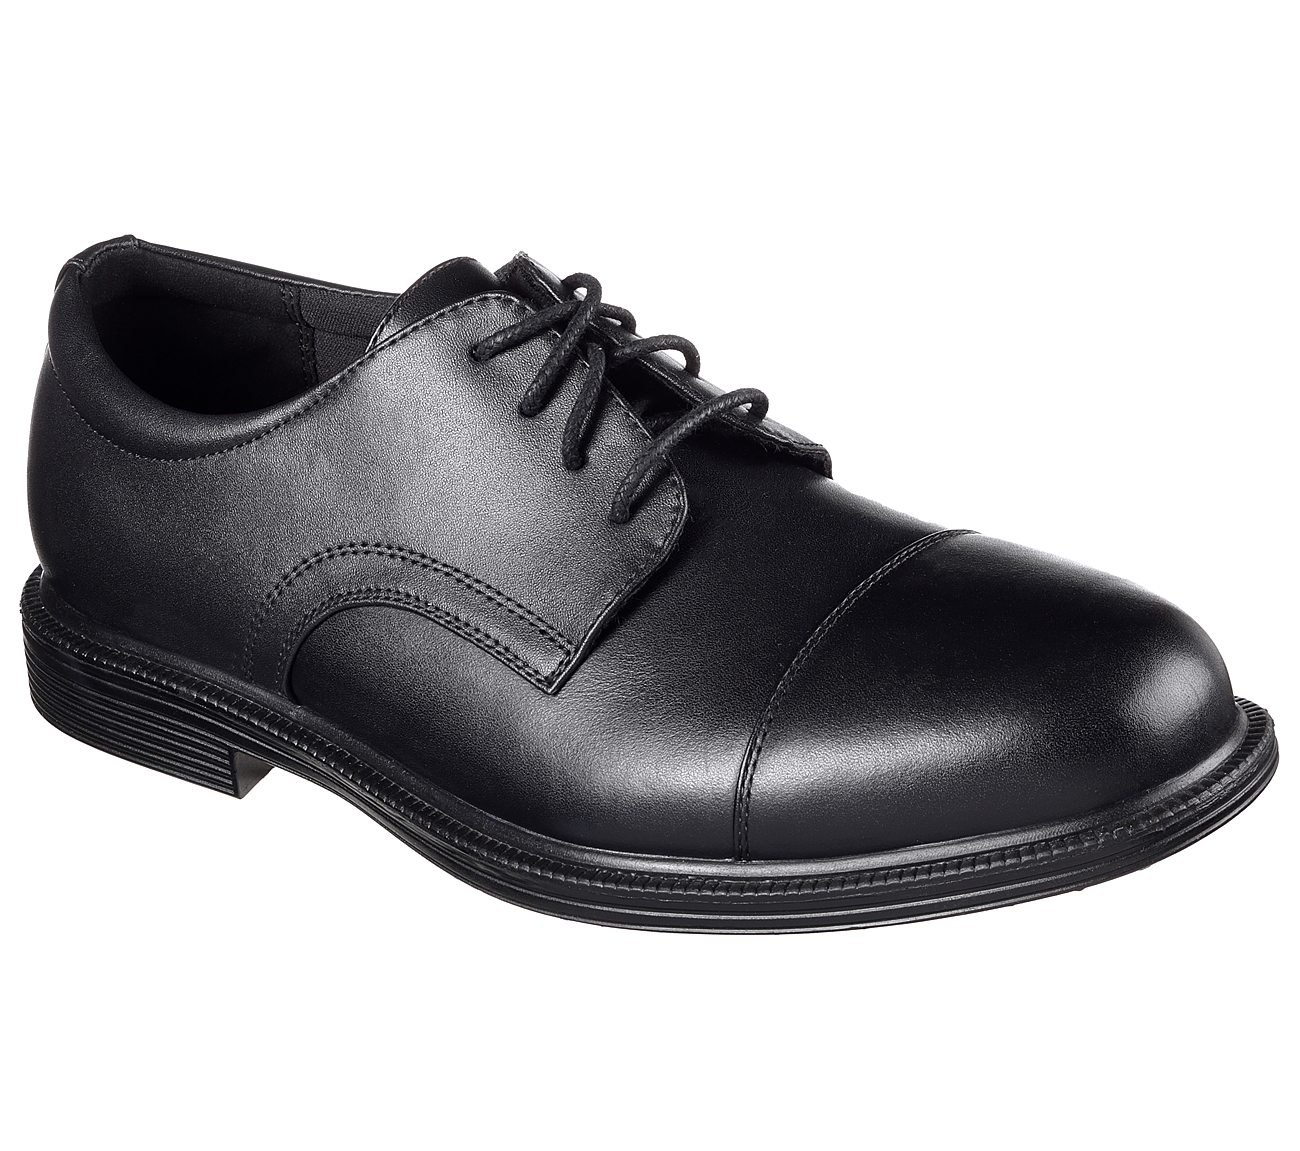 Work Relaxed Fit: Gretna - Gering SR. $85.00. 3.8. (6 reviews). Read 6  Reviews. Hover to zoom. BLACK